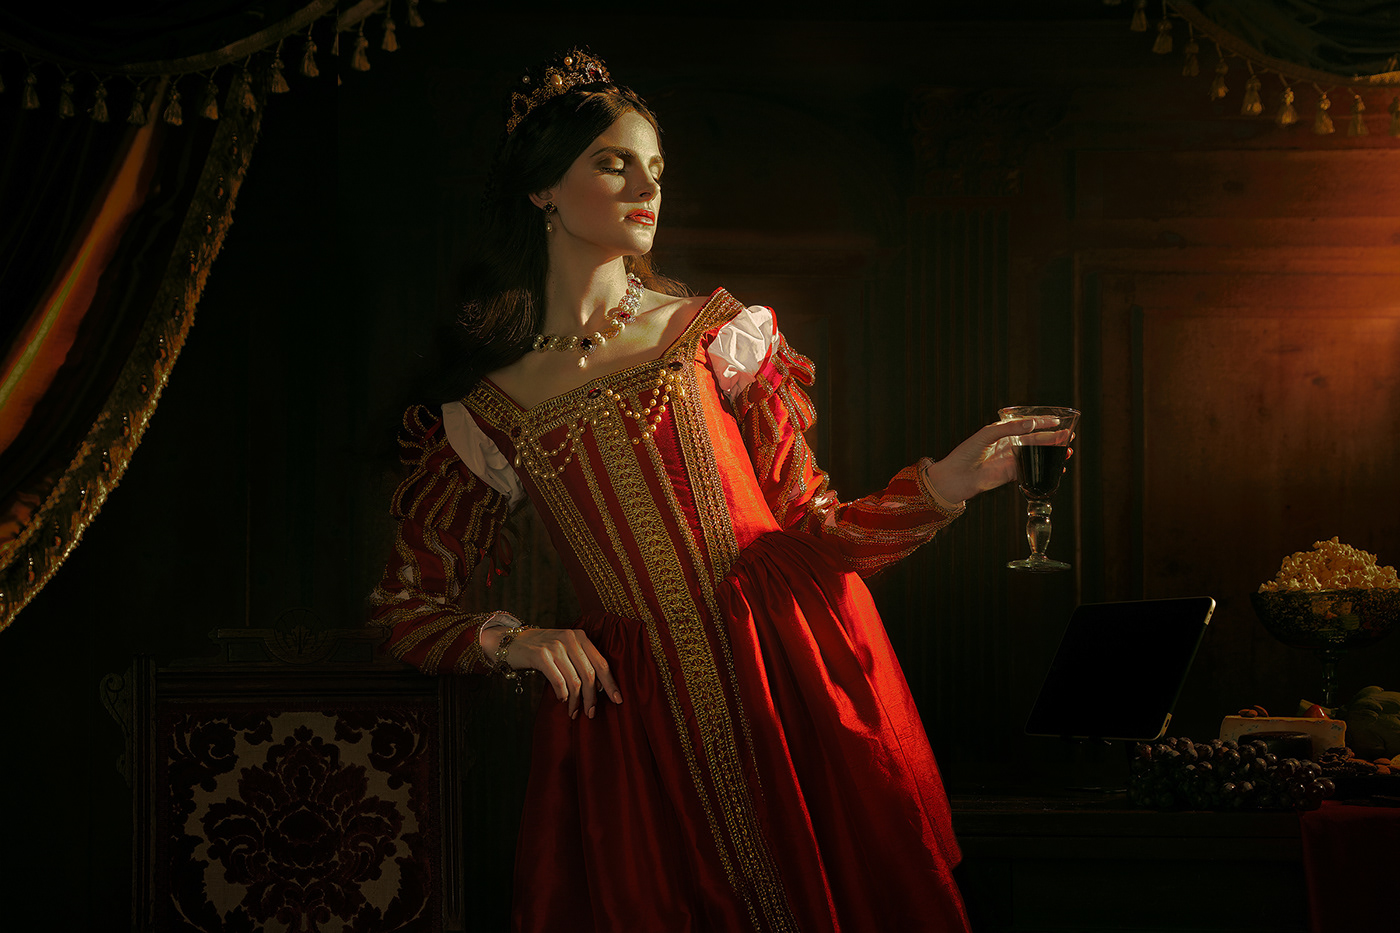 empowerment female gold Label medieval model Packaging queen scepter wine